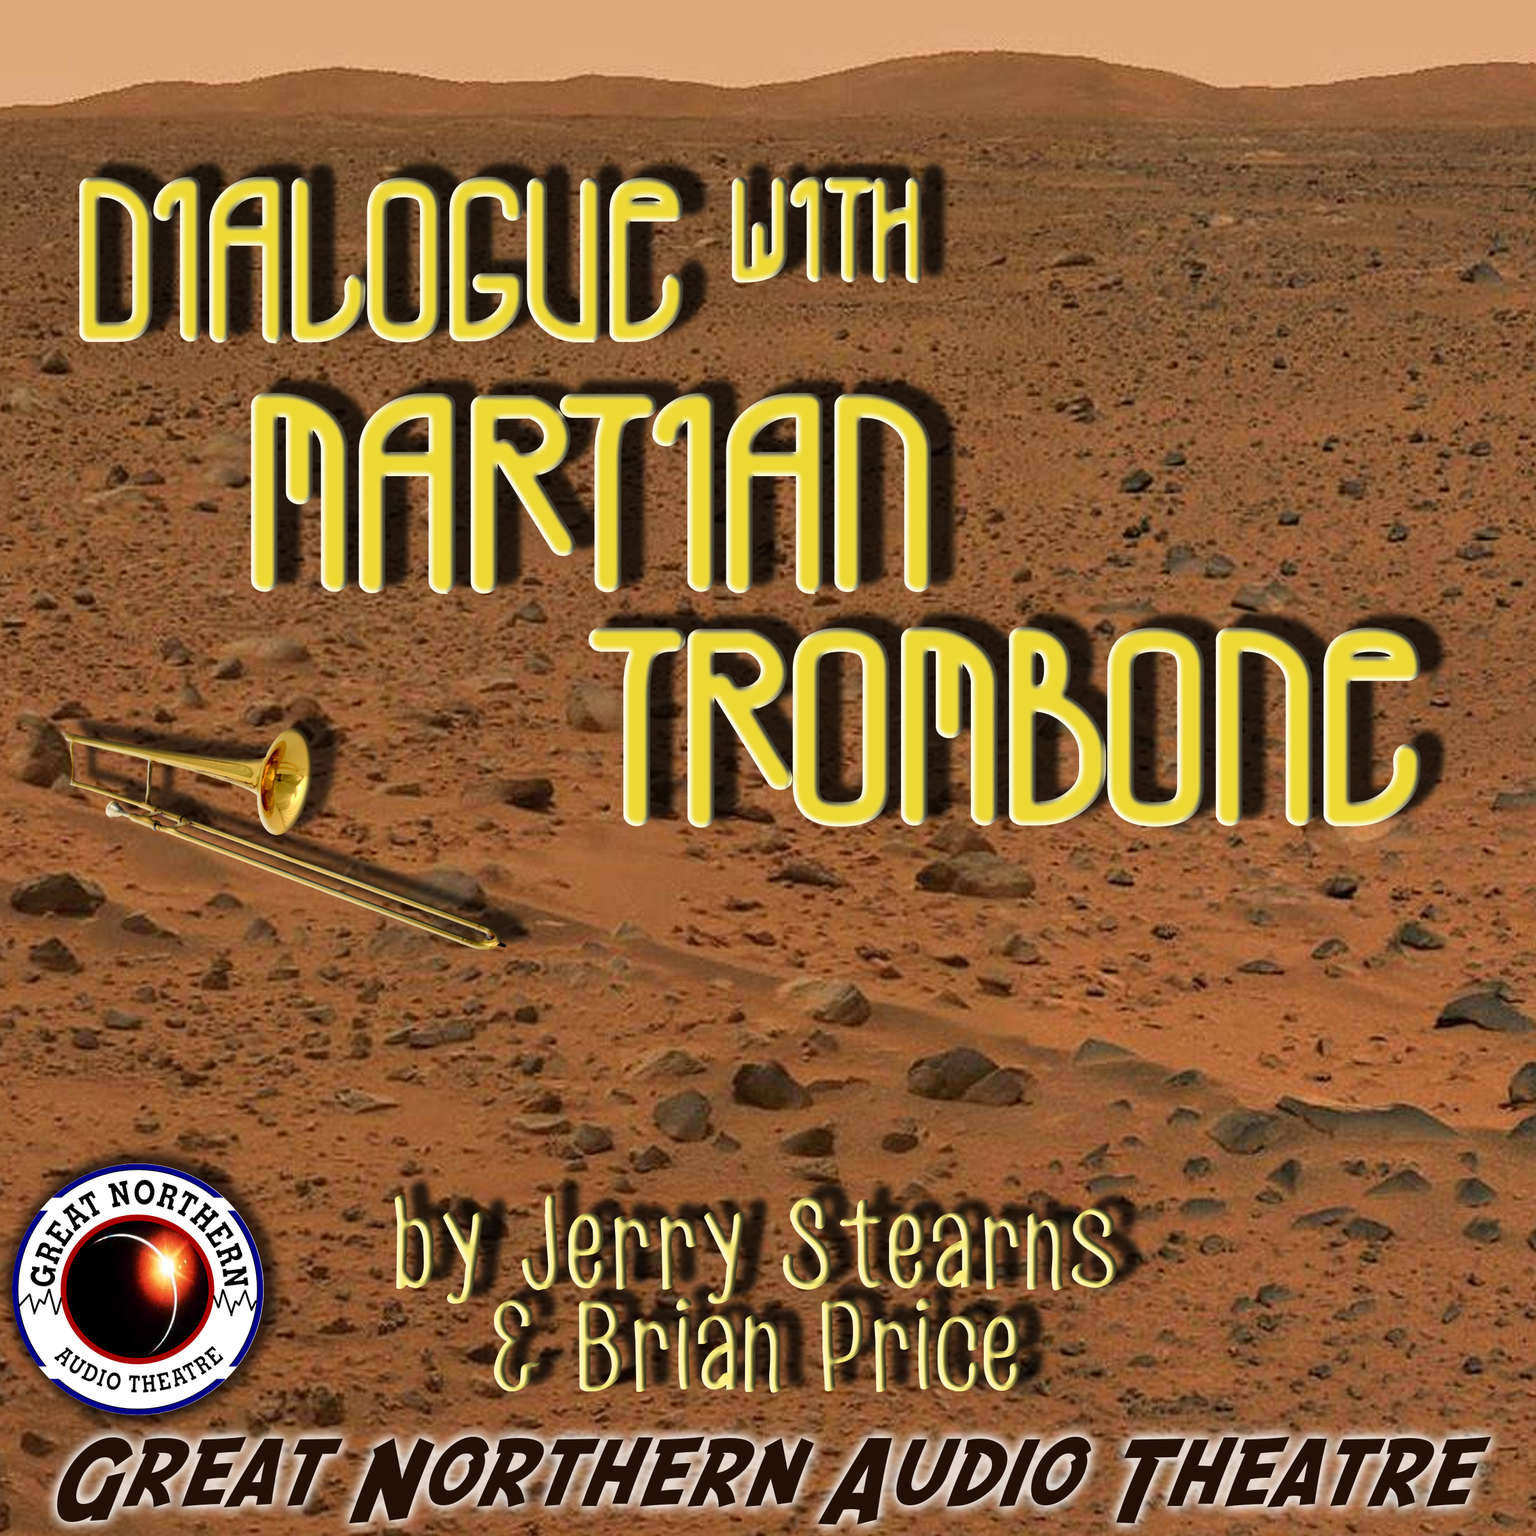 Printable Dialogue with Martian Trombone Audiobook Cover Art